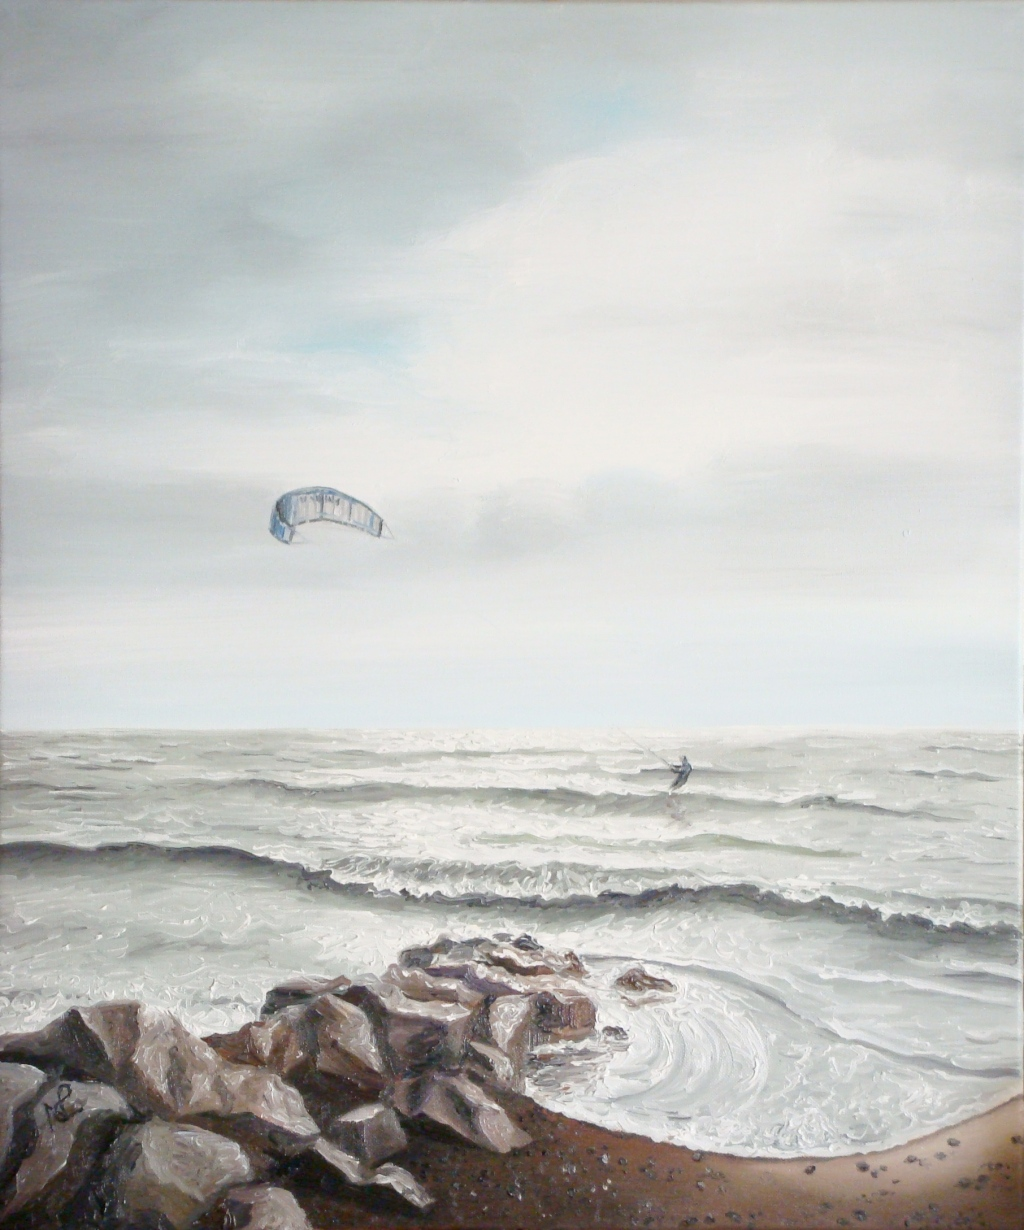 Seascape III: Silver Surfer (2008 © Nicholas de Lacy-Brown, oil on canvas)